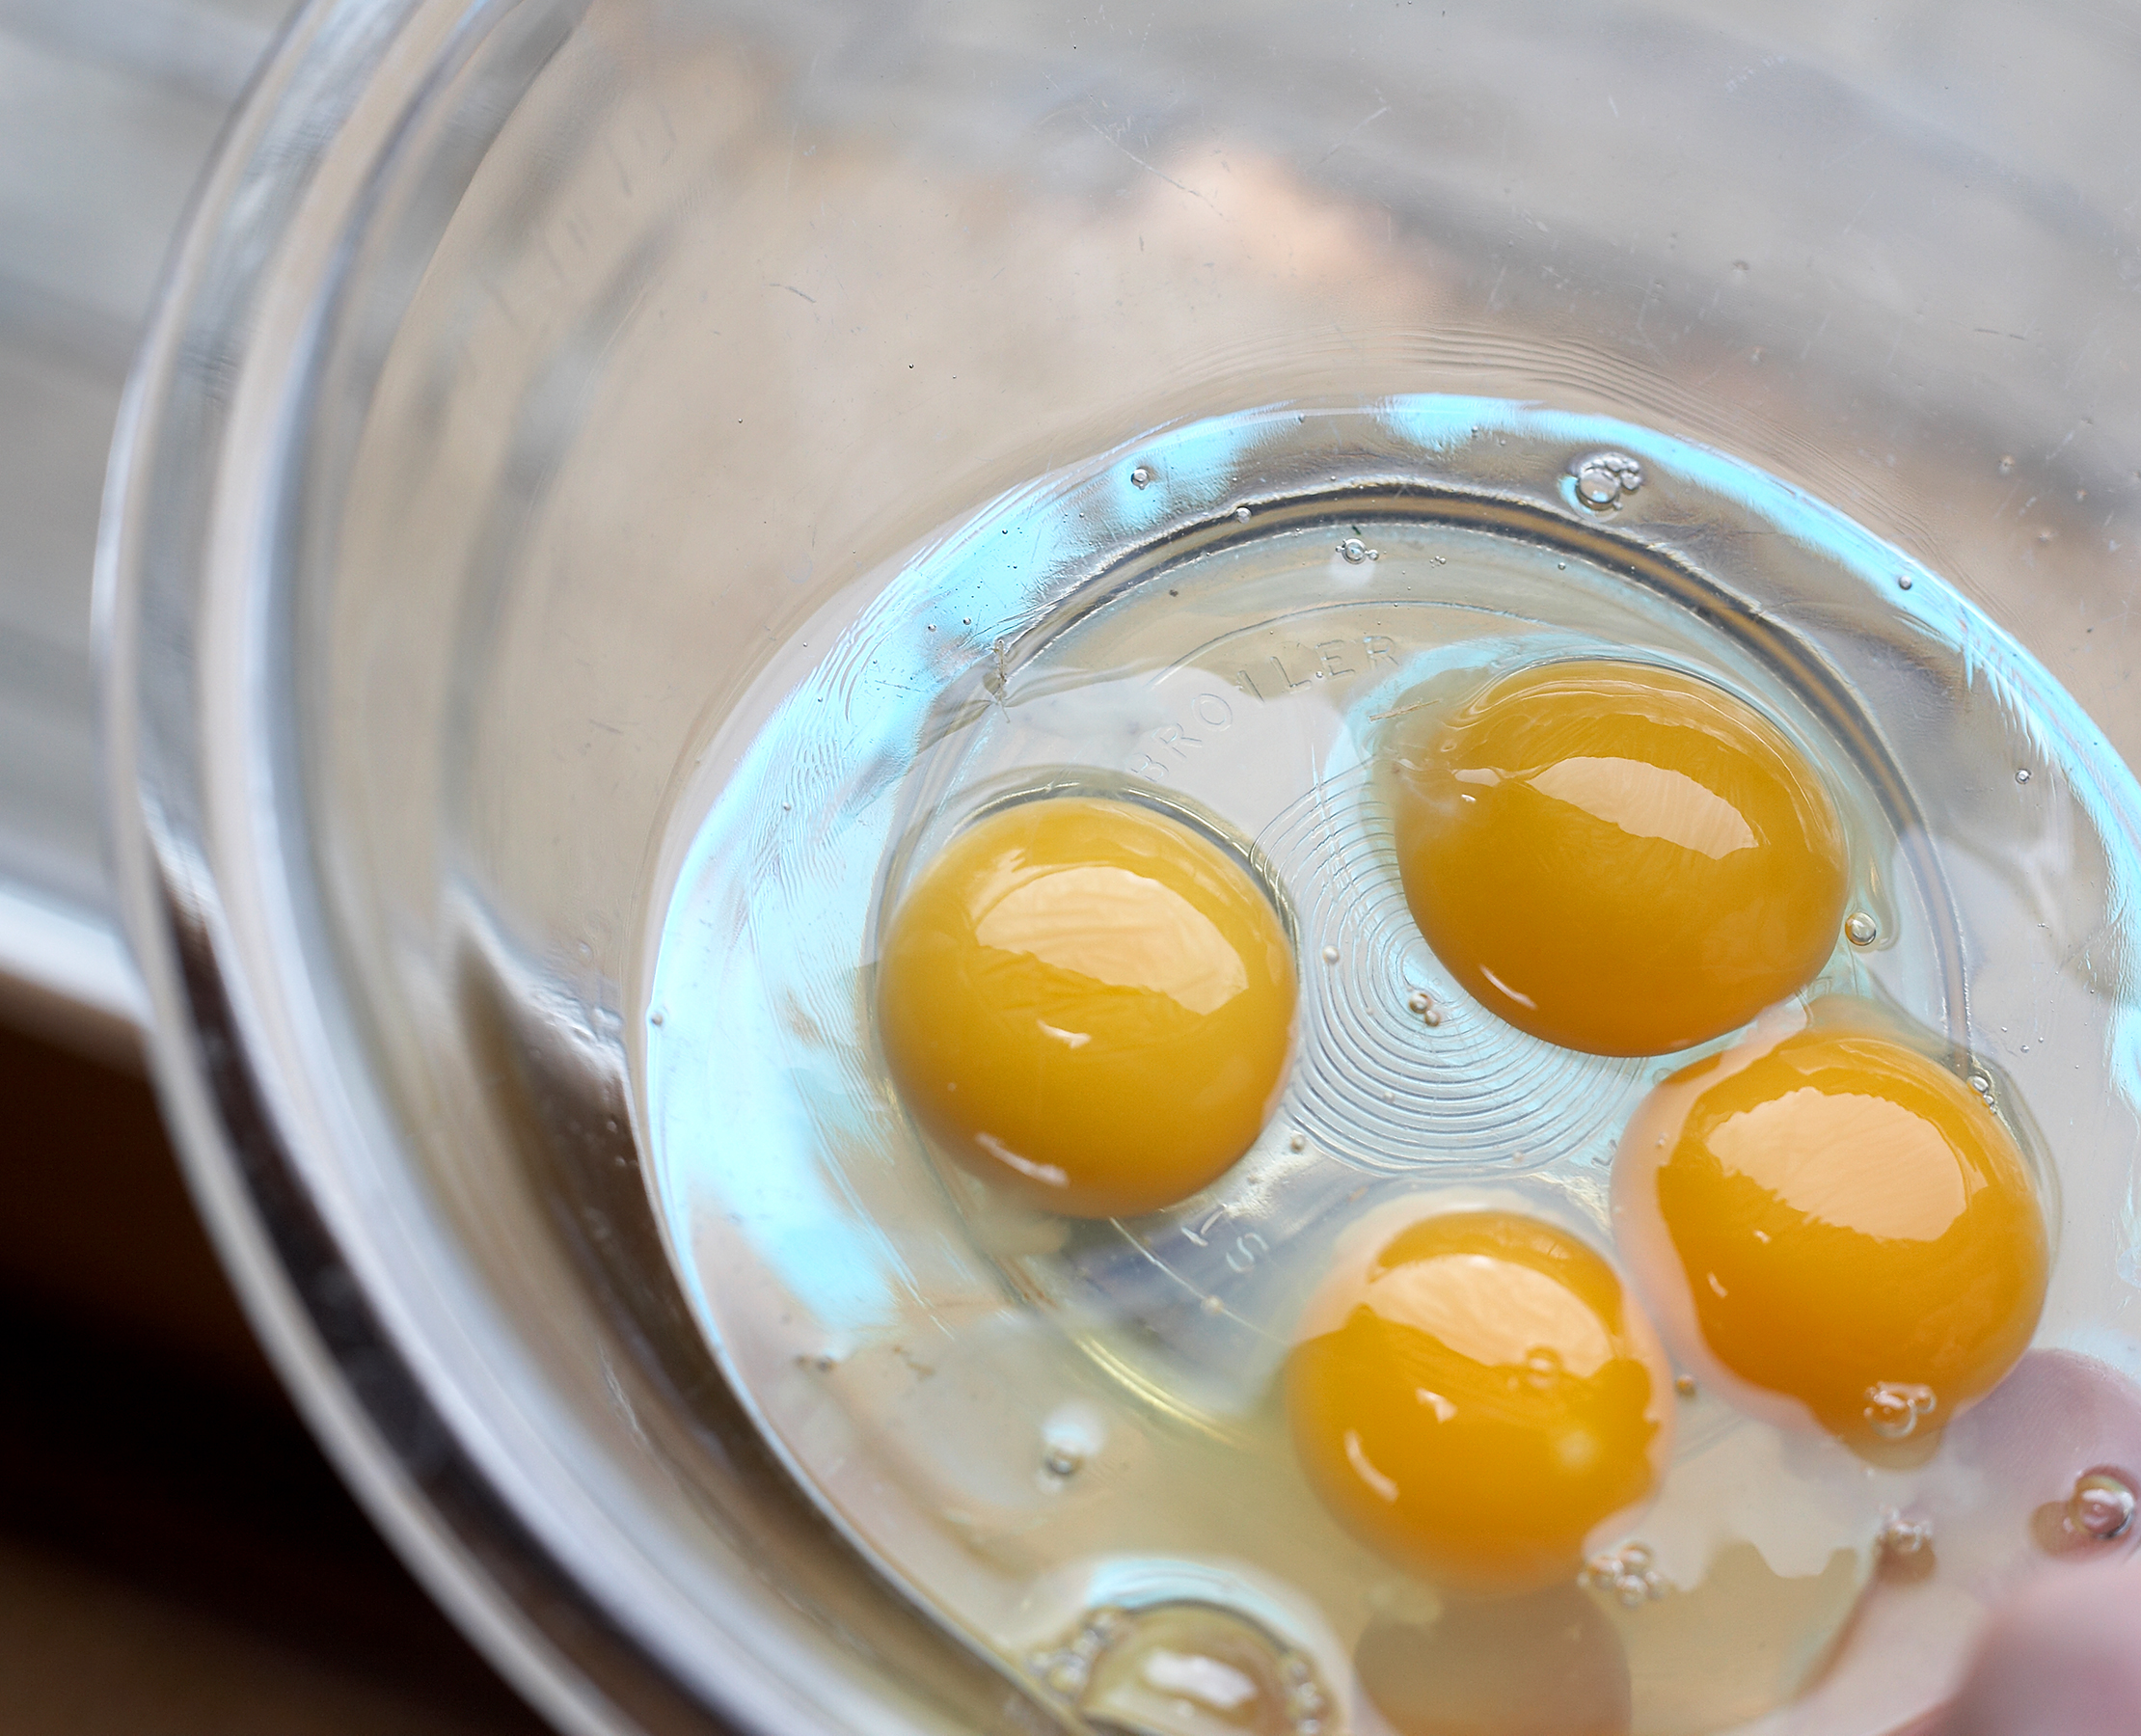 EGGS-ORGANICALLY-RAISED-HENS--FARM-LIFESTYLE-ANIMAL-BI-PRODUCT_ORGANIC_YELLOW-©-JONATHAN-R.-BECKERMAN-PHOTOGRAPHY.jpg